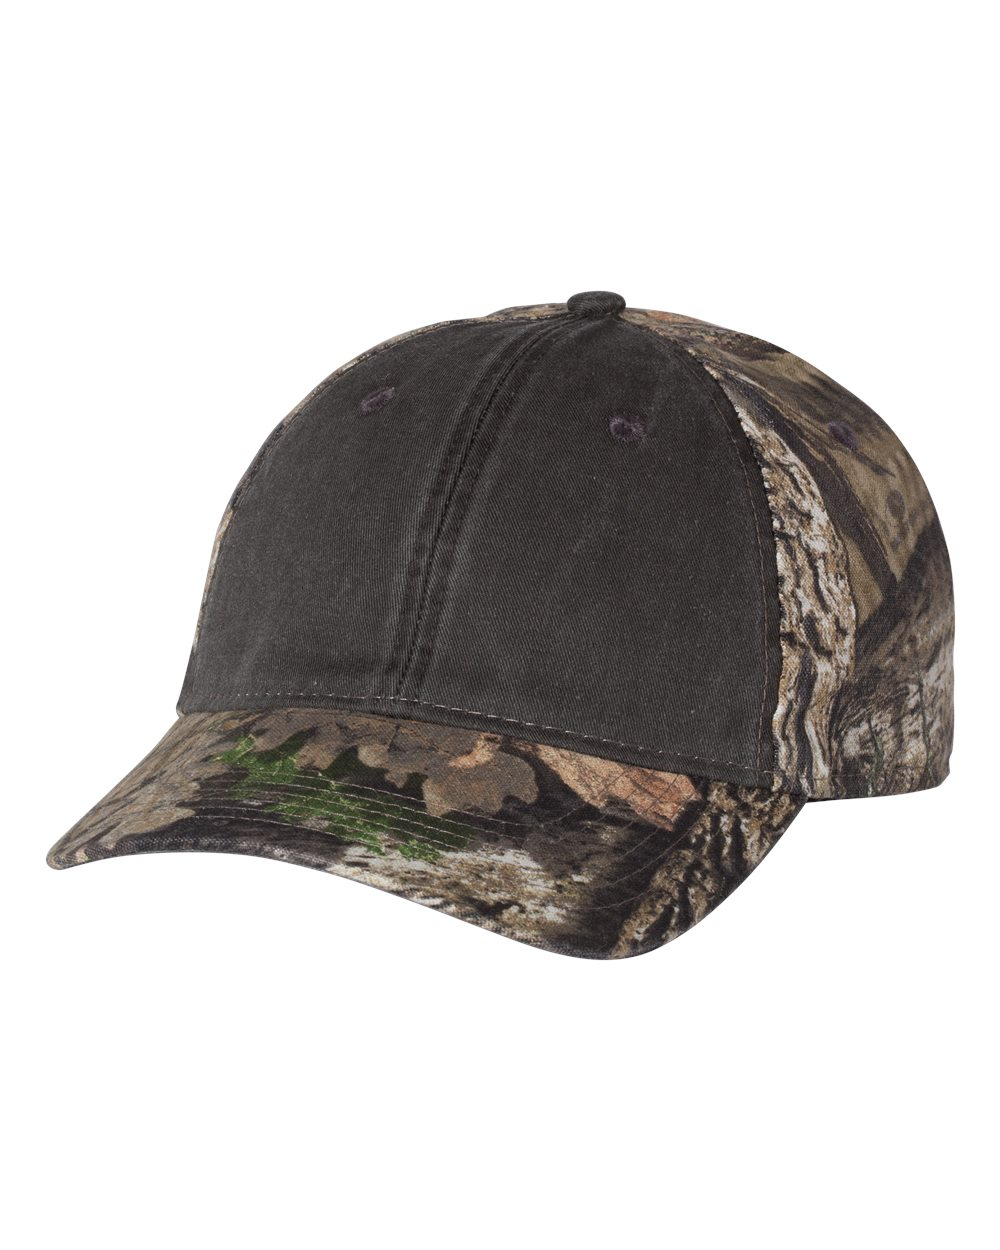 Outdoor Cap PDC100 - Pigment Dyed Front Cap